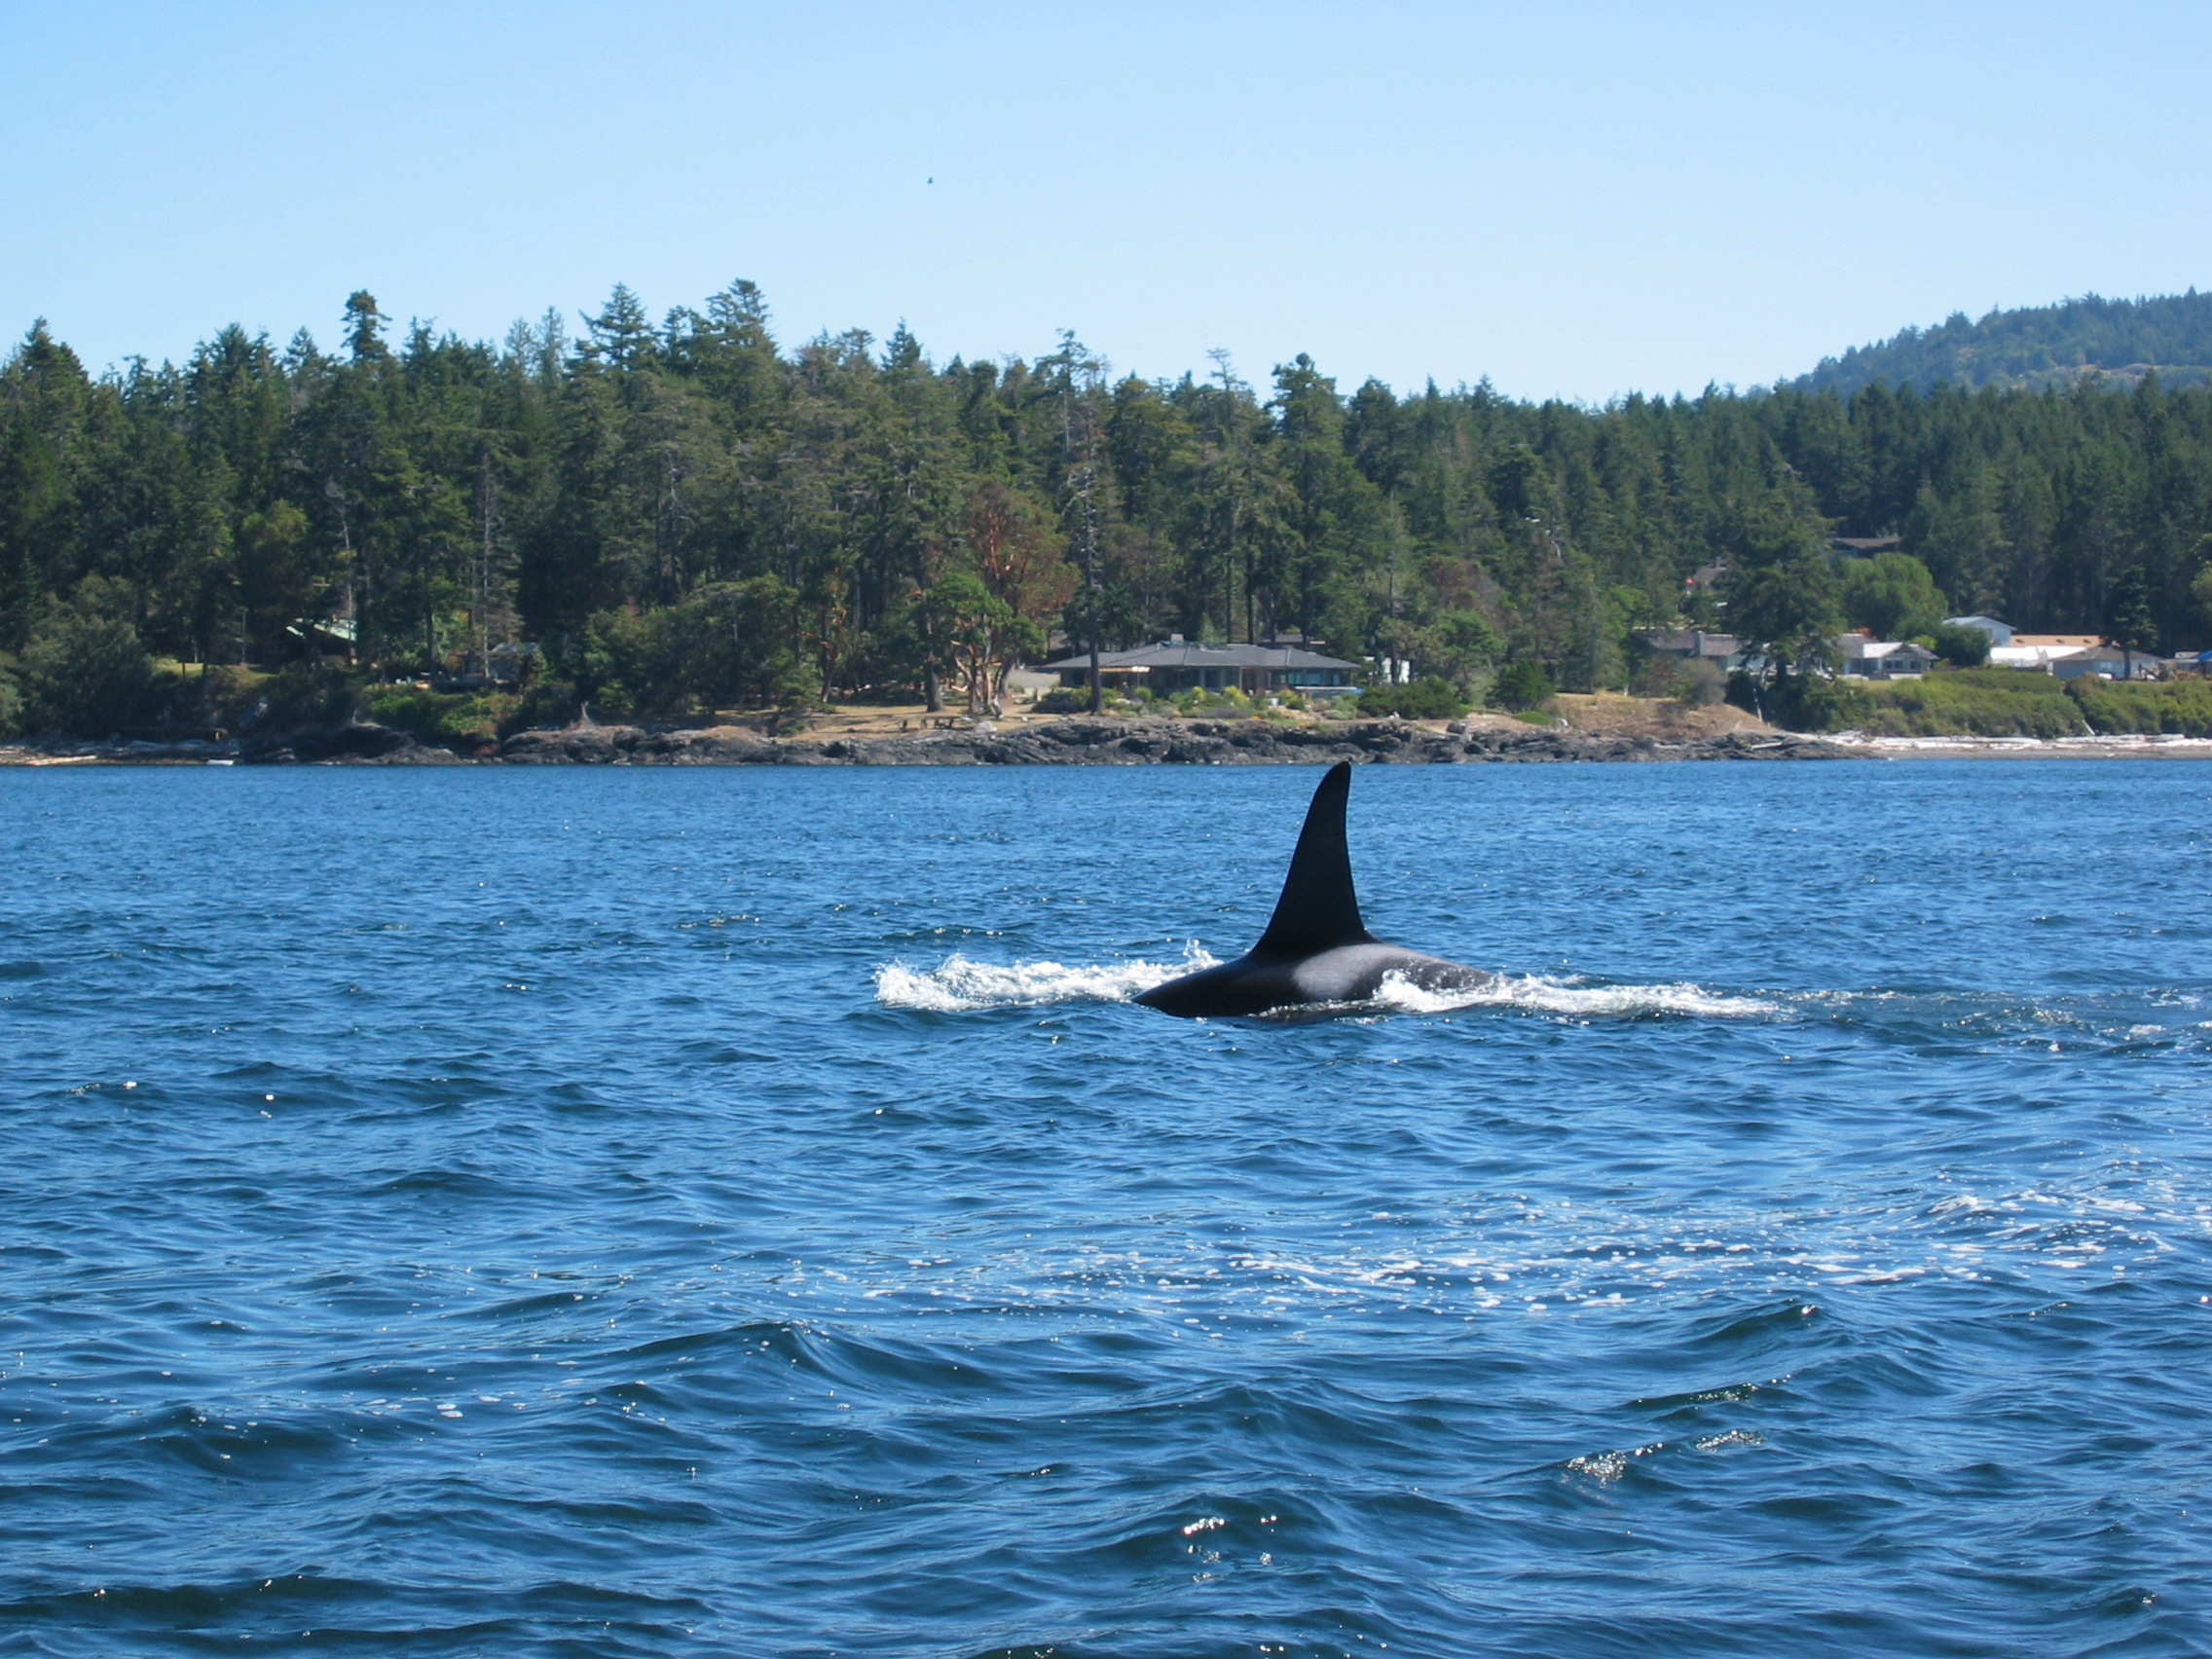 Killer Whale near Victoria BC Wallpapers Desktop Background Full 2272x1704